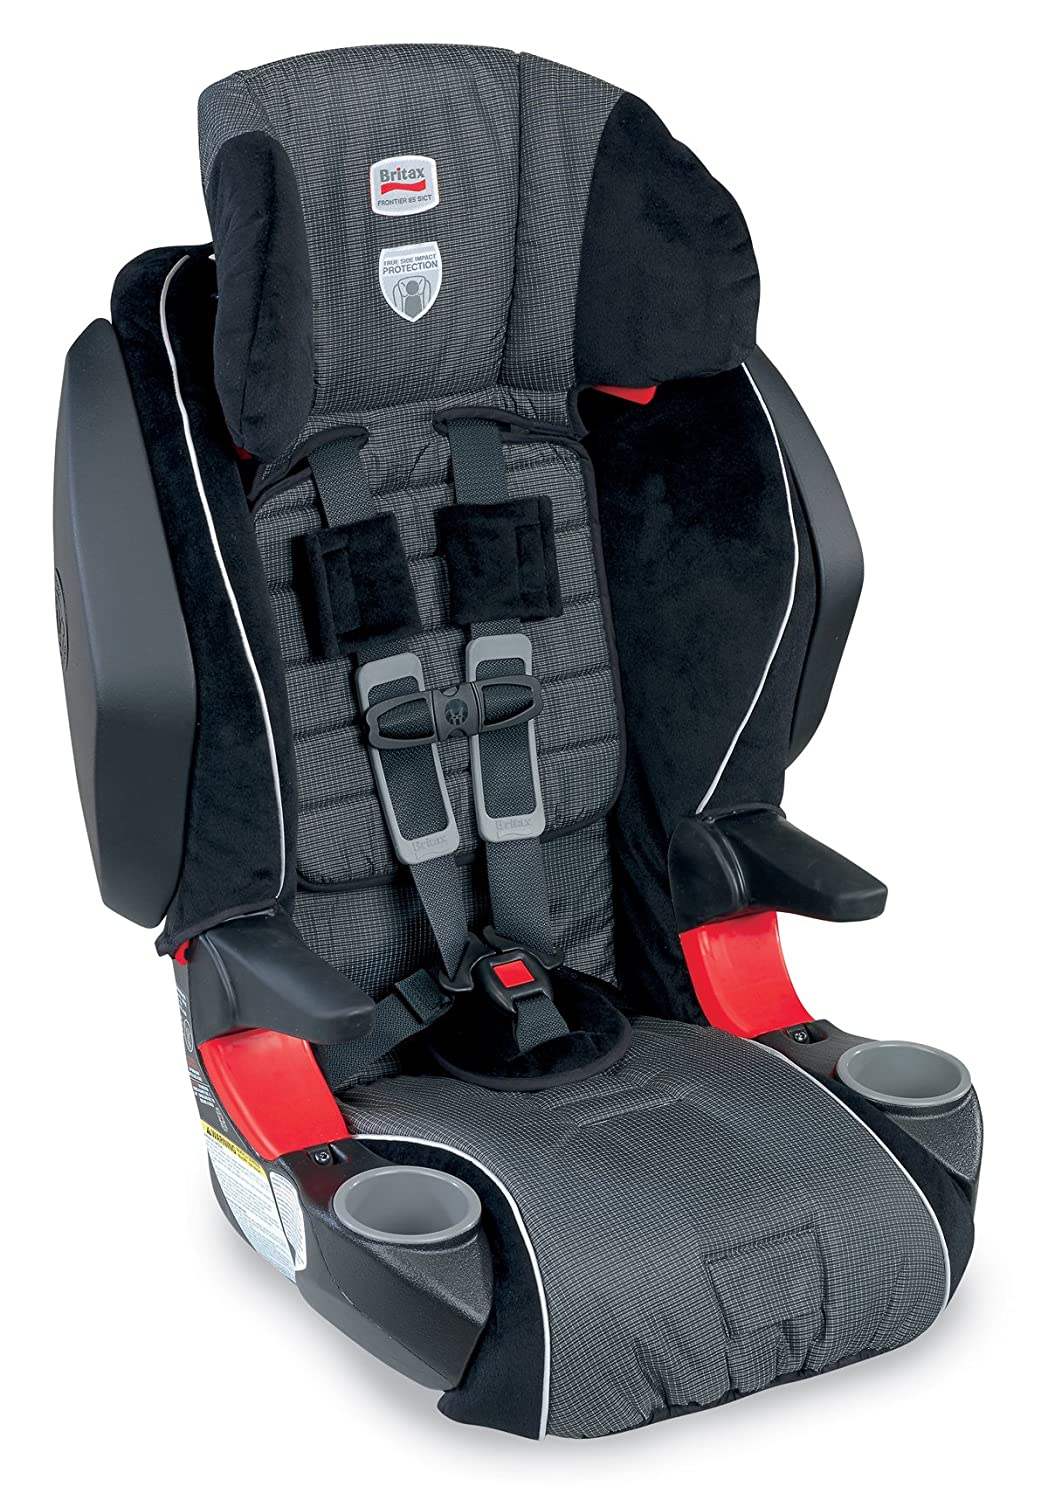 Britax Frontier 85 SICT Booster Seat